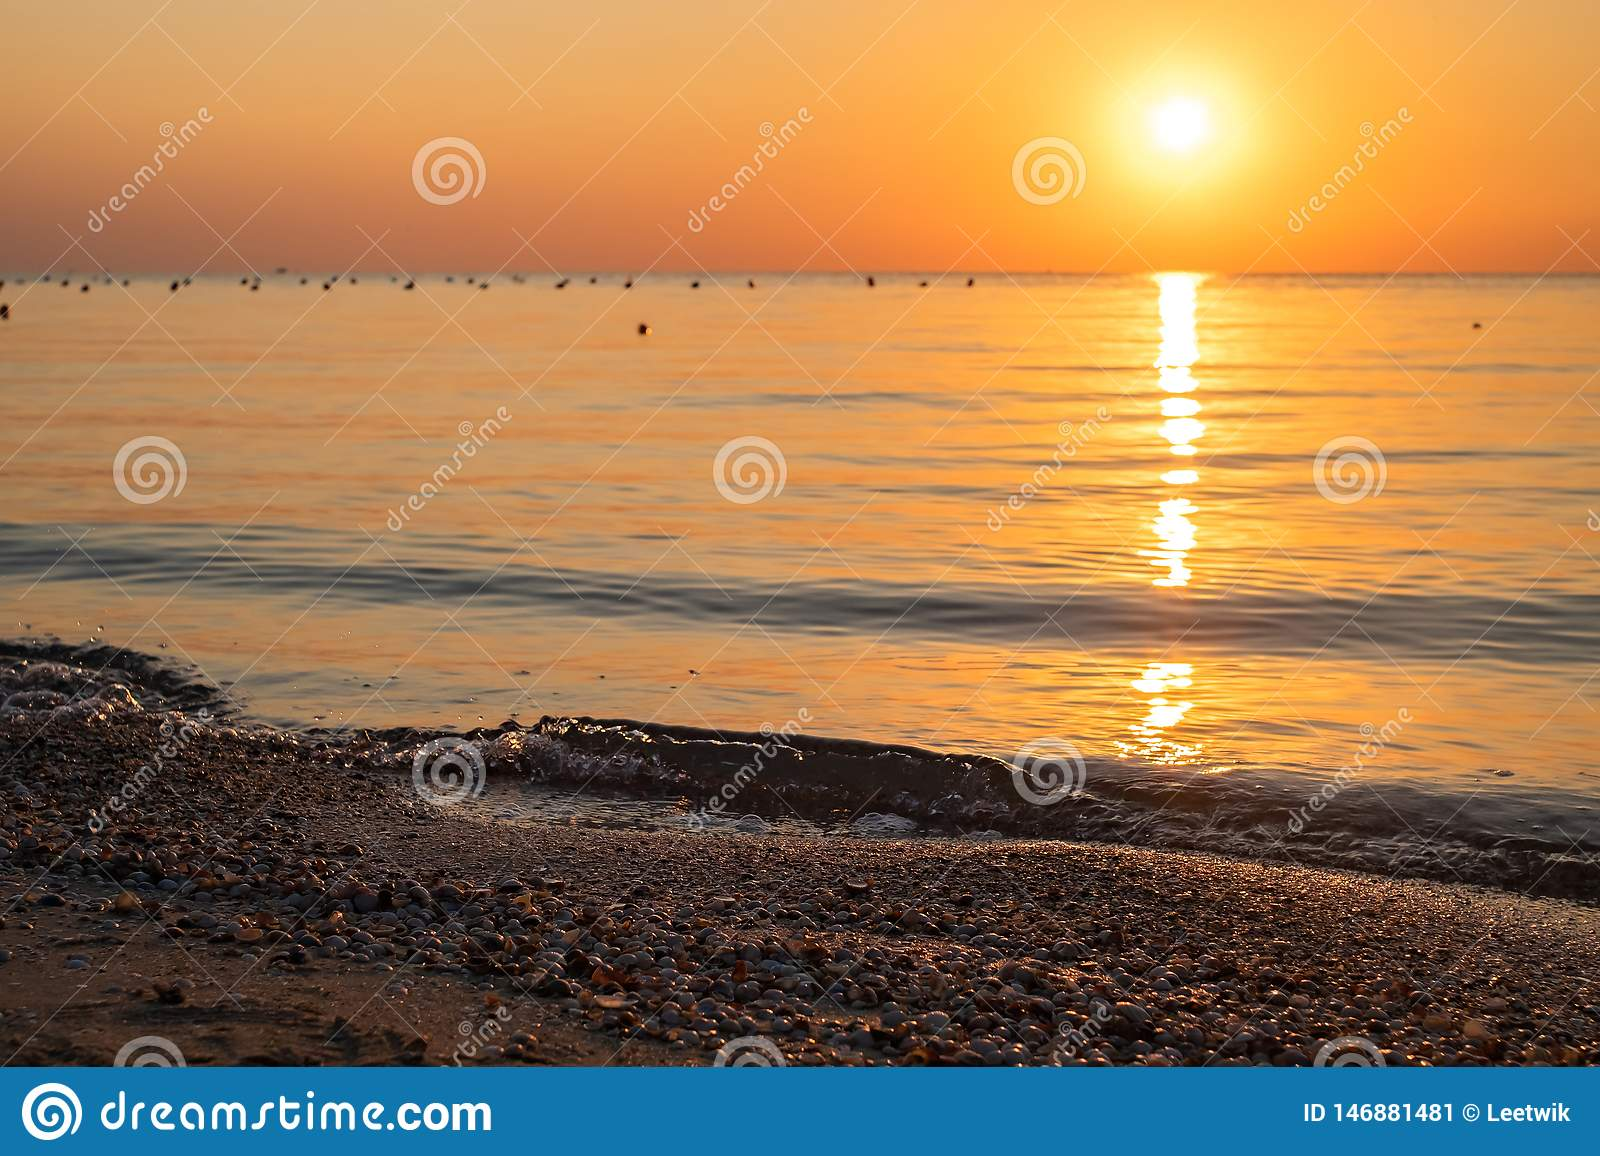 Seashells on the sea beach against the backdrop of a colorful dawn. focus control